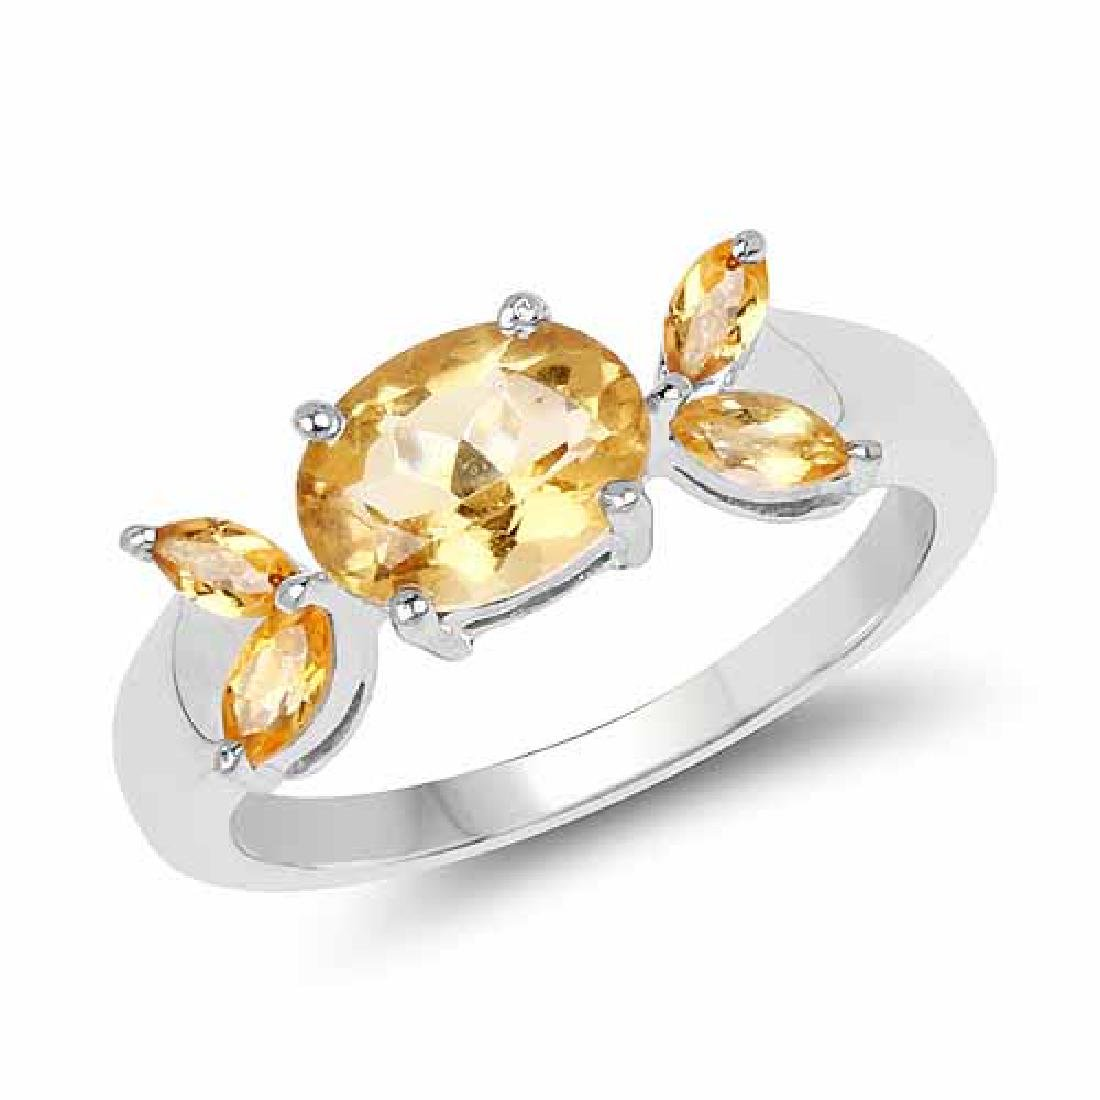 1.60 Carat Genuine Citrine .925 Sterling Silver Ring